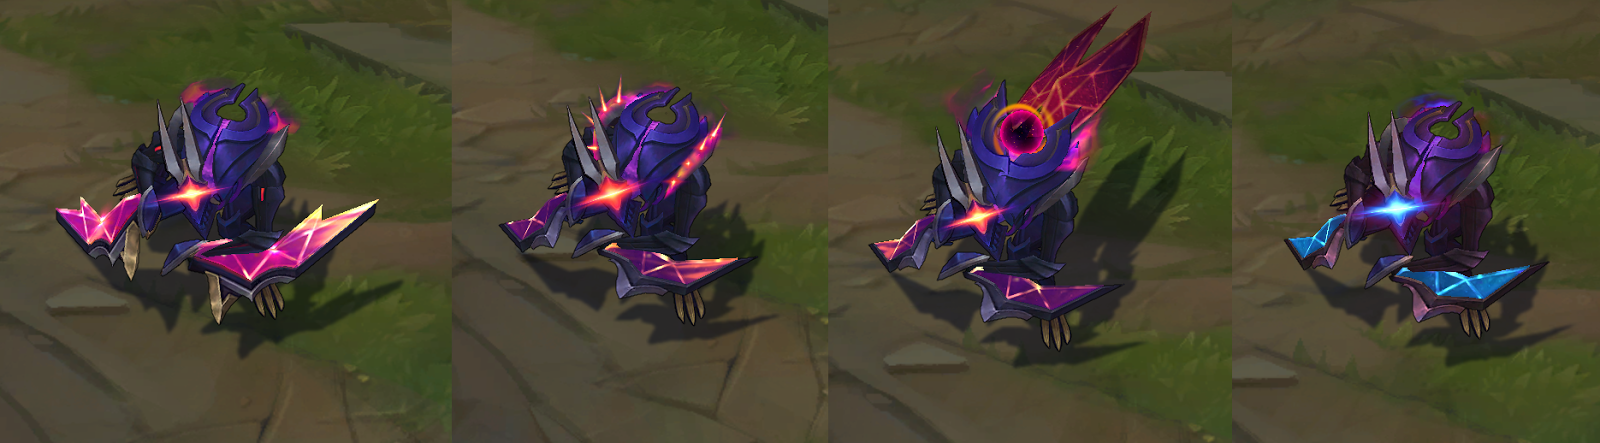 New Dark Star Skins For Orianna And Khazix Arrive Tomorrow In Patch